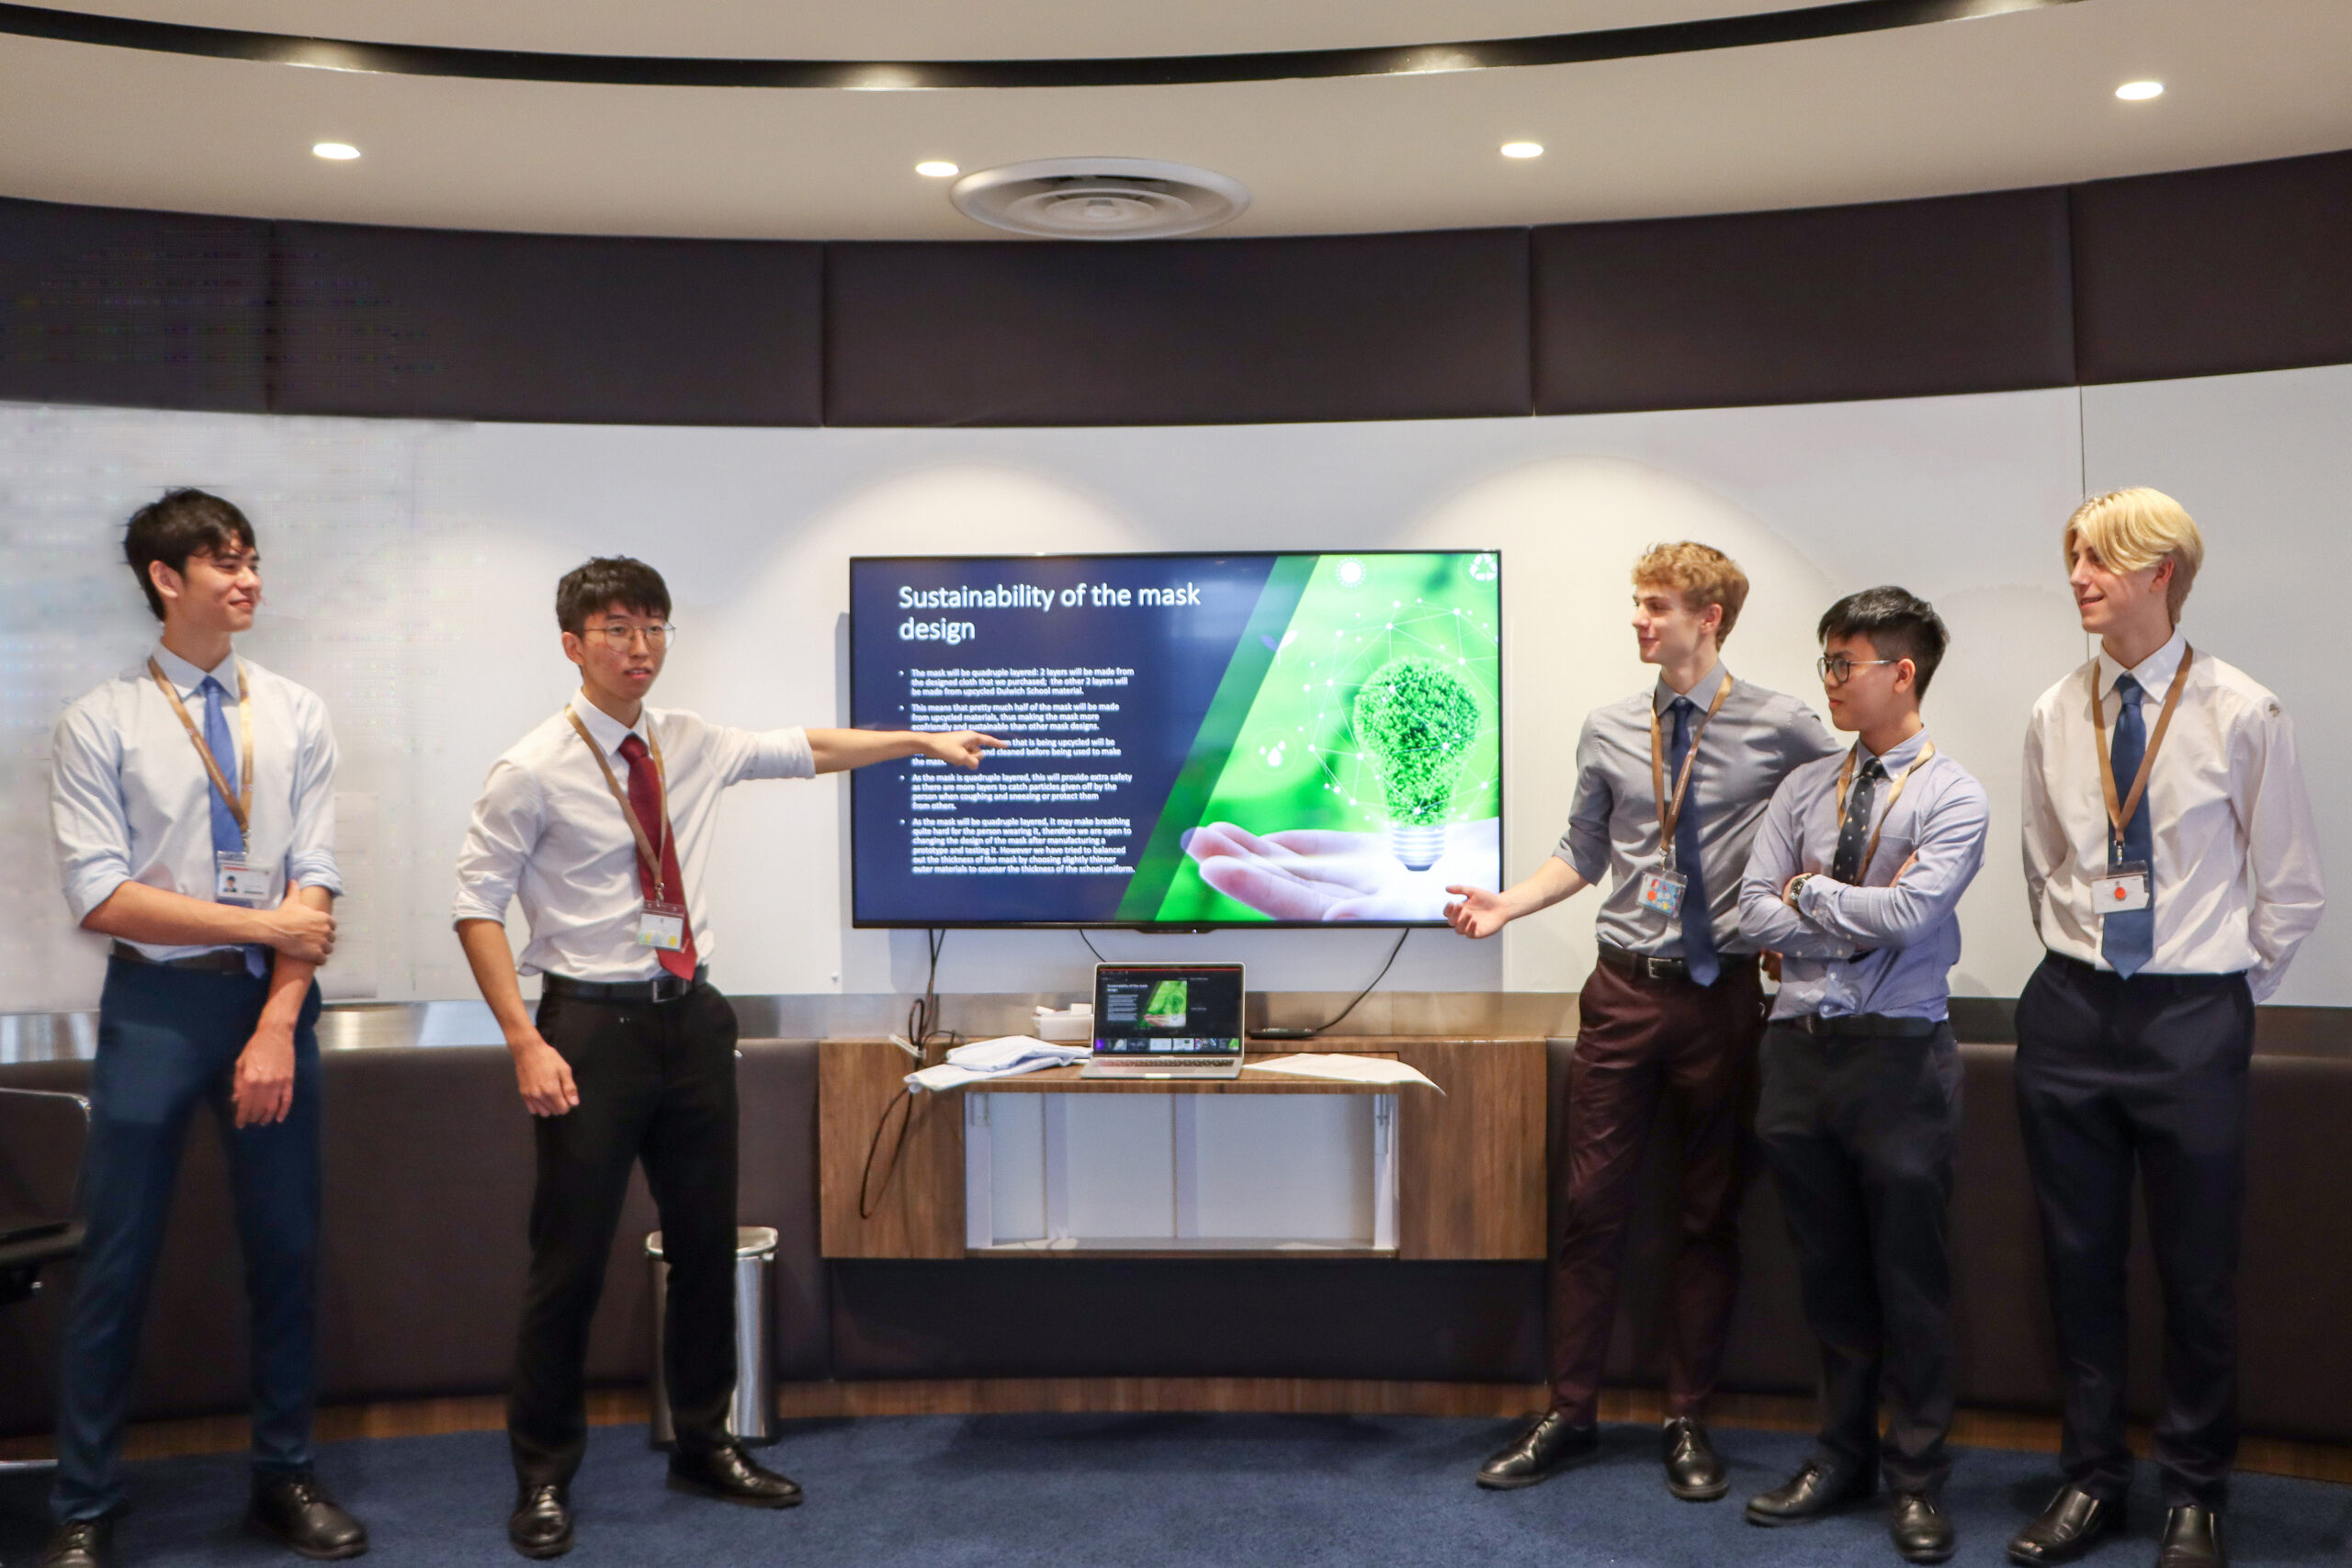 Students presenting powerpoint slides